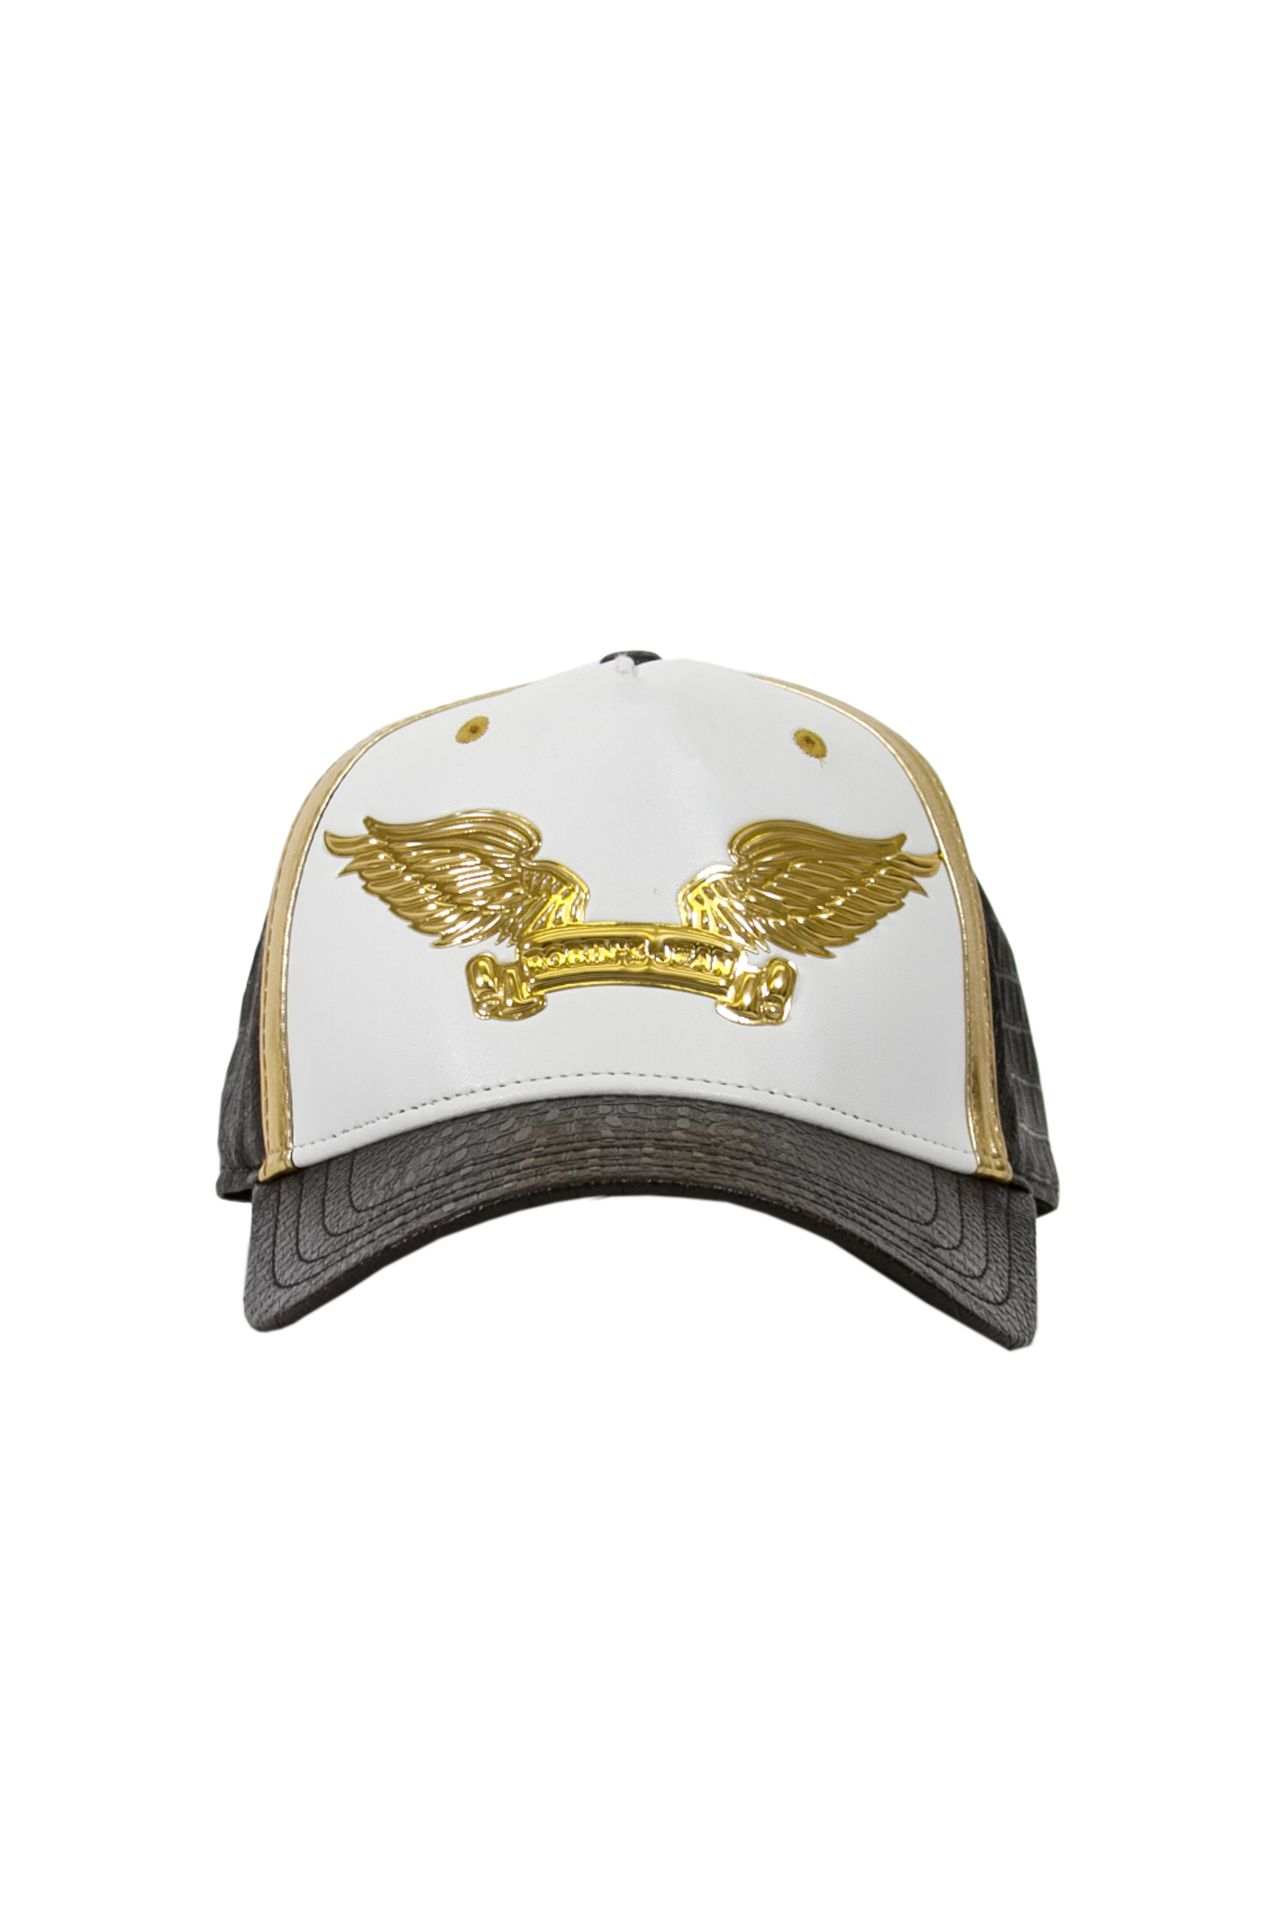 WHITE WITH GOLD ACCENT VEGAN LEATHER CAP